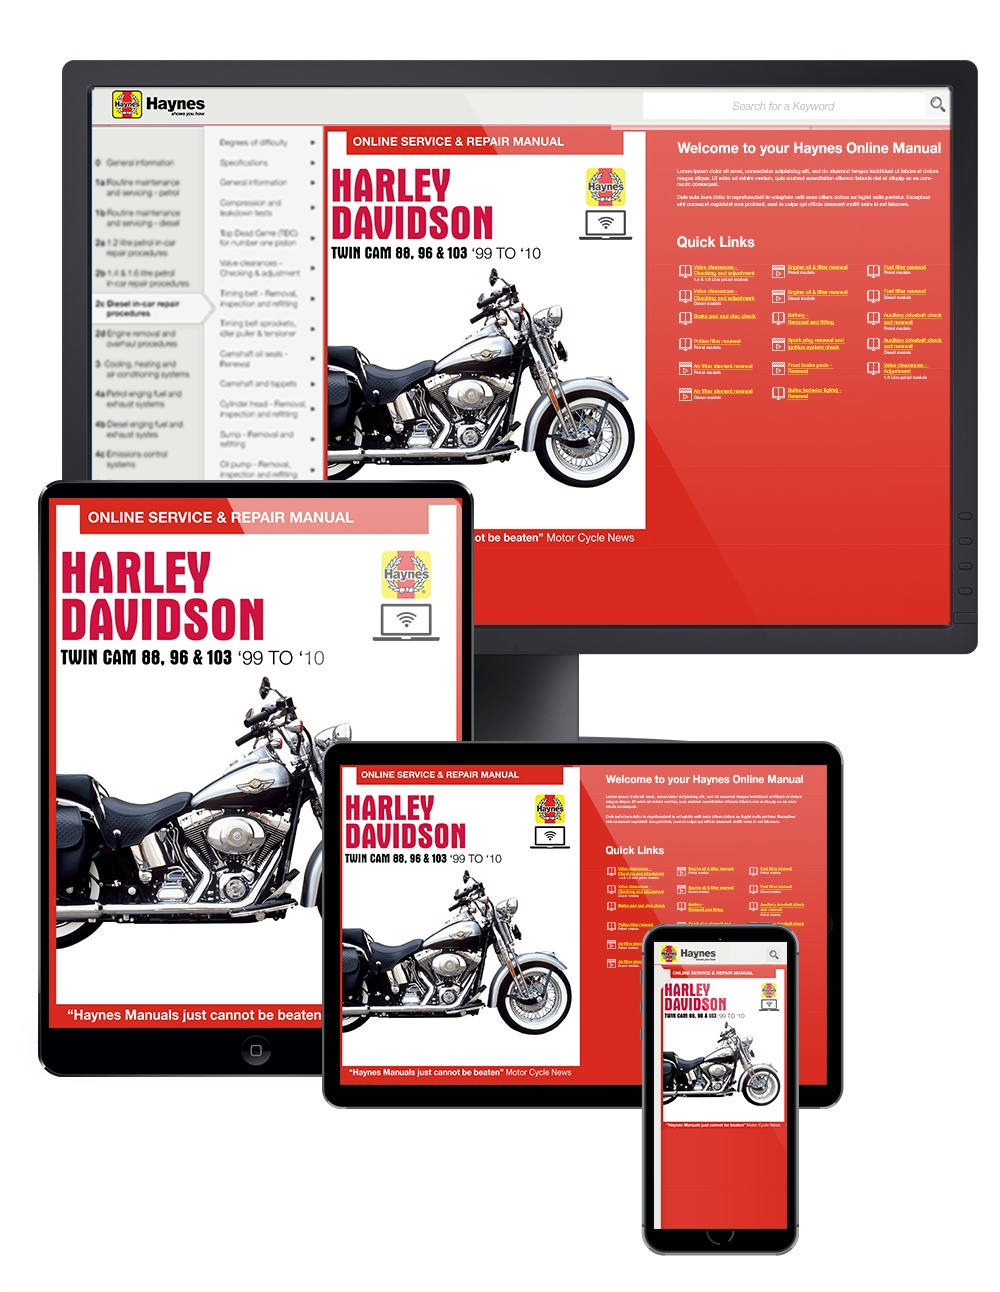 Harley-Davidson Twin Cam 88 Haynes Online Manual covering Softail (2000 thru 2010), Dyna Glide (1999 thru 2010), and Electra Glide/Road King and Road